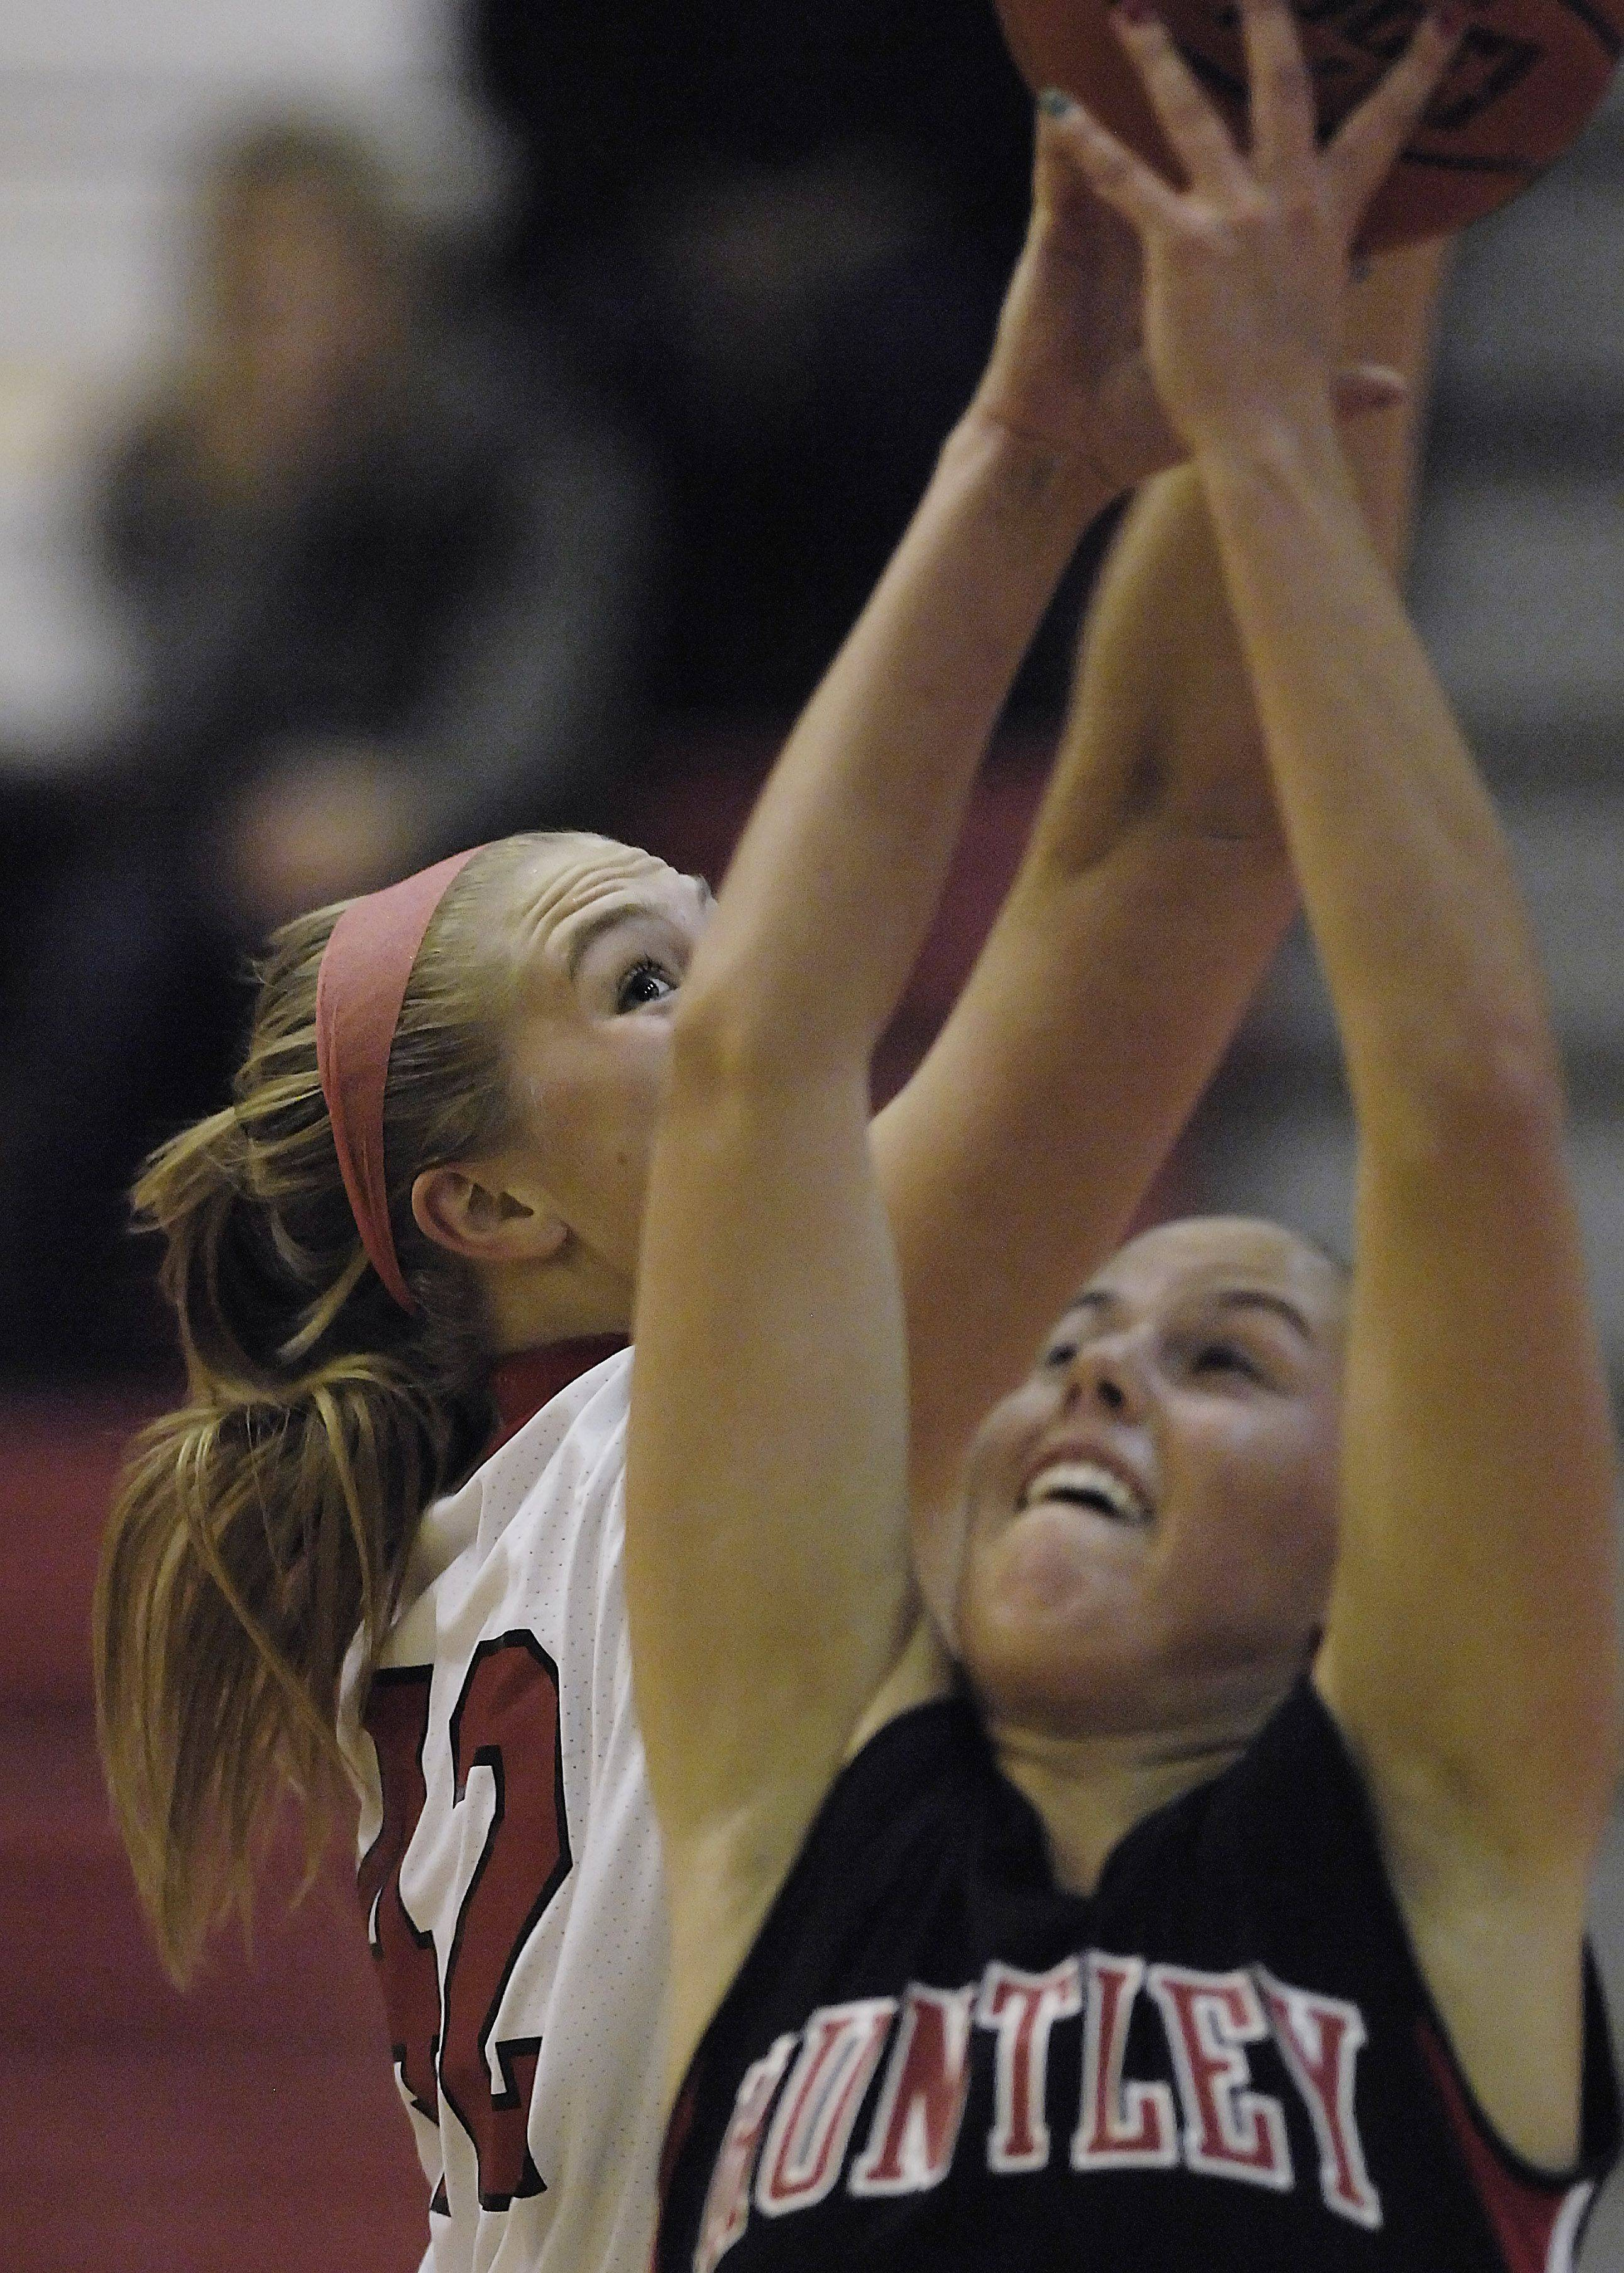 Barrington's Shelby Whigham keeps her eye on the ball as she stretches for a rebound against Huntley's Rachel Chapuis Tuesday.